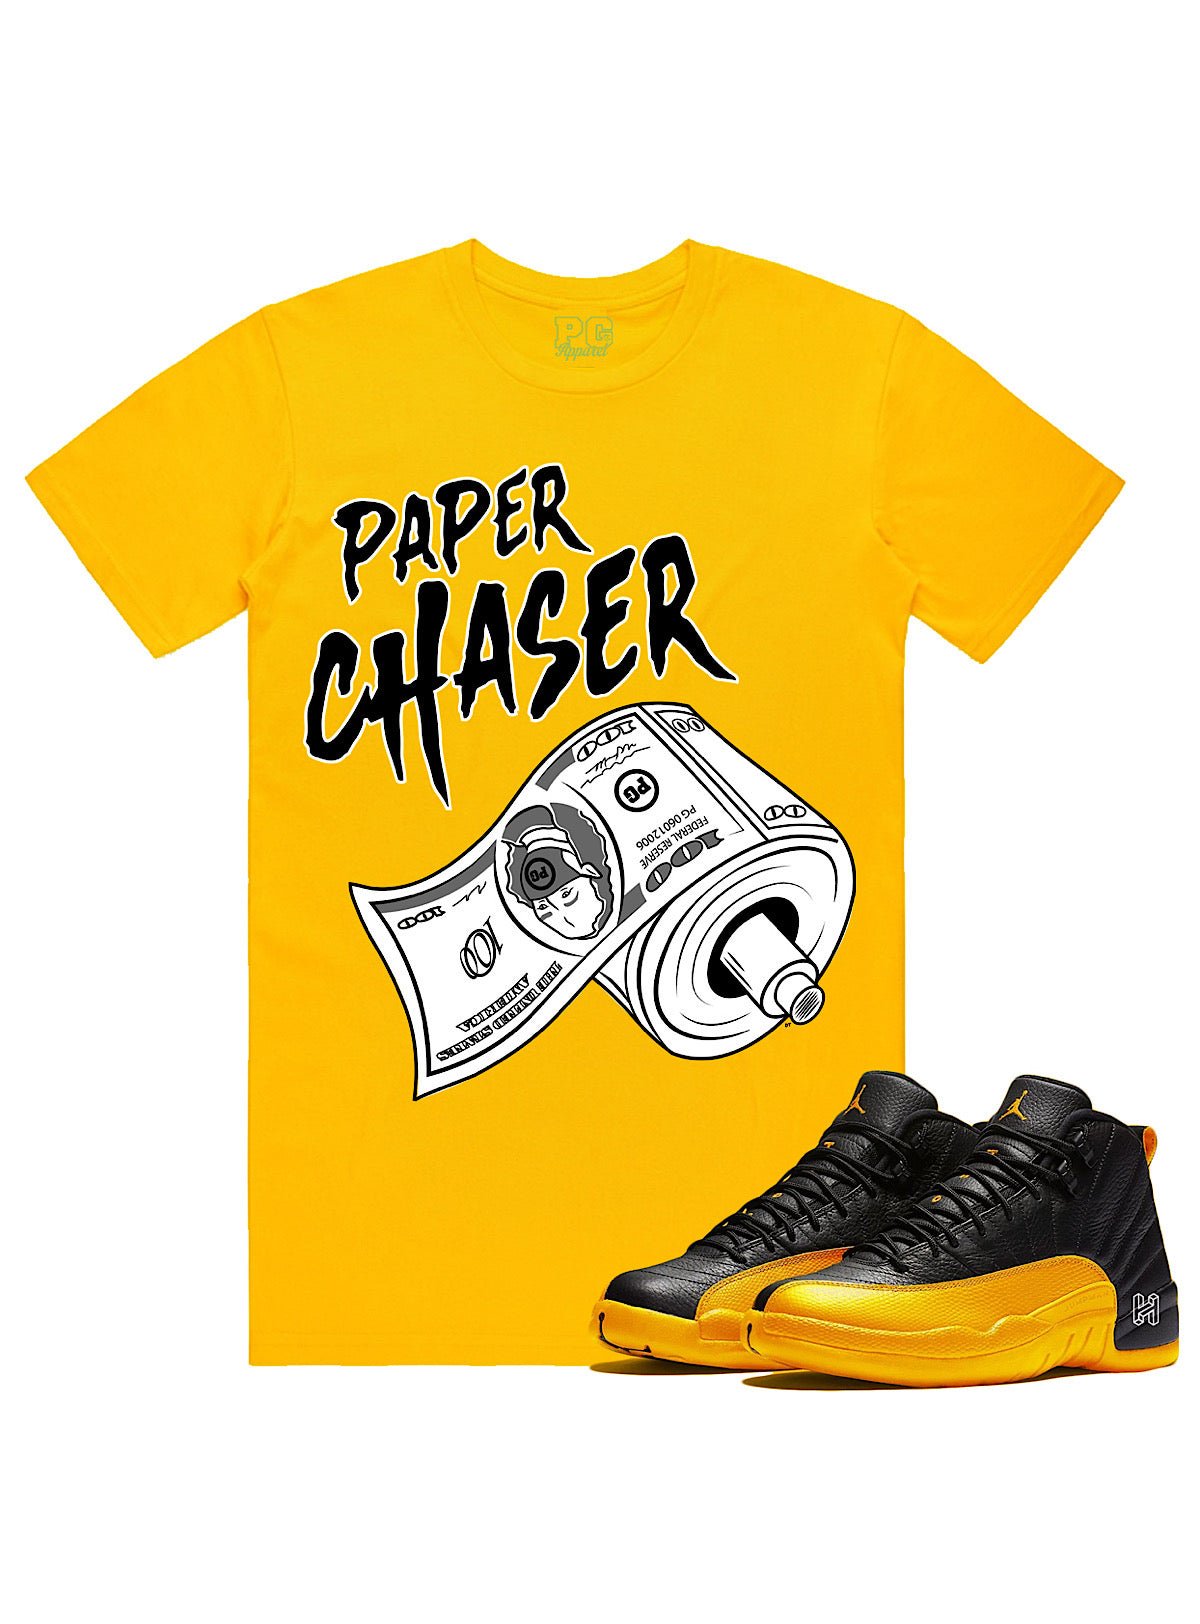 PG Apparel T-Shirt - Paper Chaser - Golden Yellow - PC100